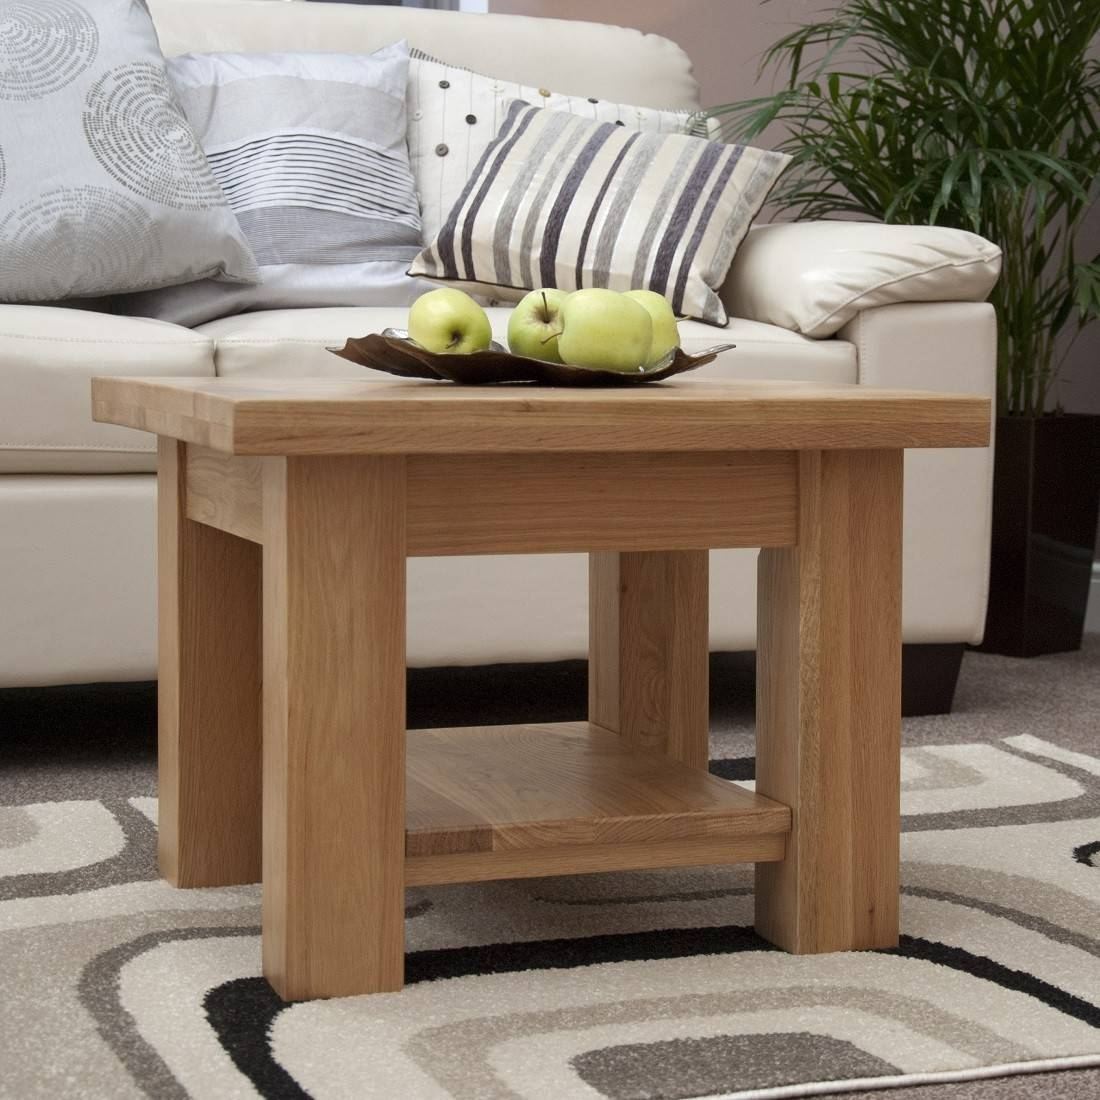 Torino Solid Oak Coffee Table/lamp Table | Oak Furniture Uk intended for Torino Coffee Tables (Image 28 of 30)